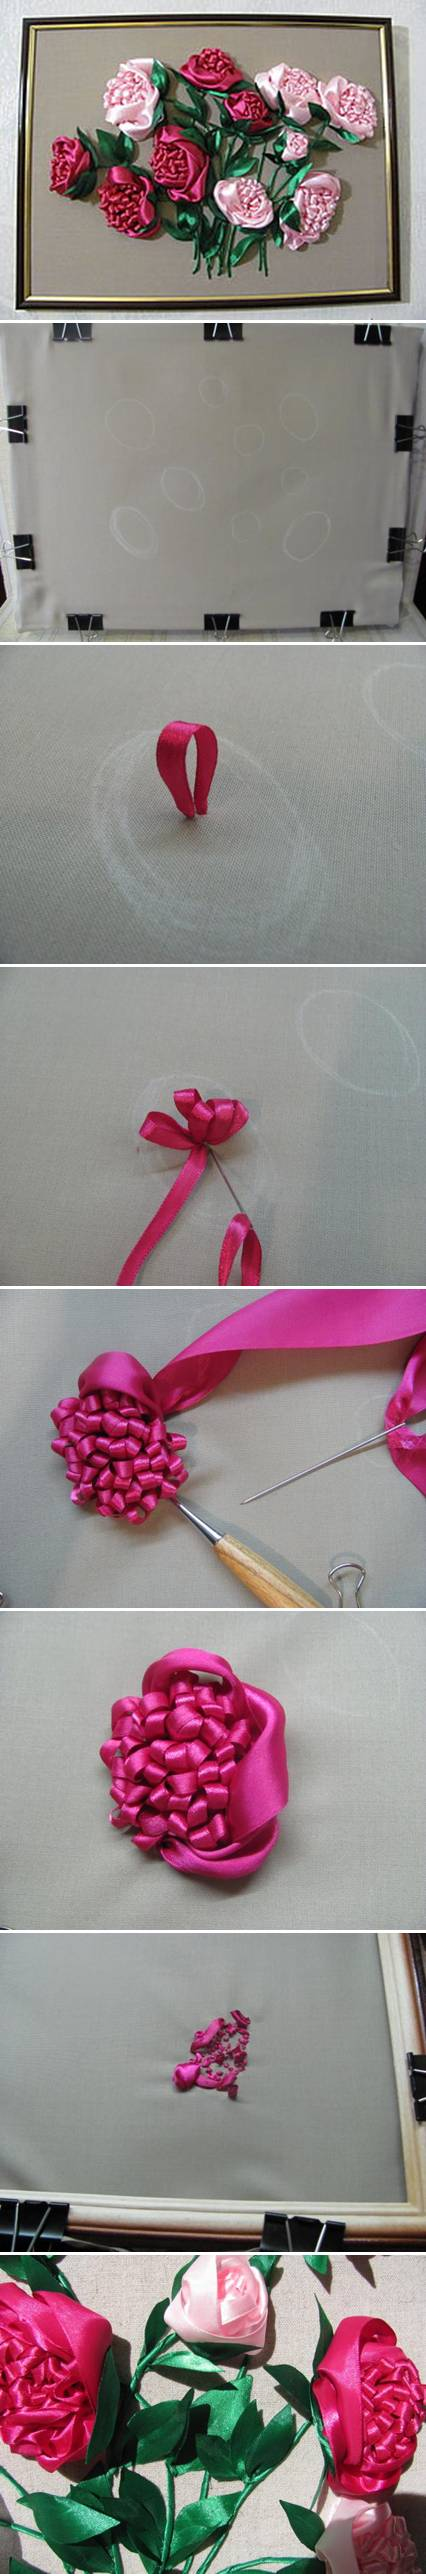 Diy embroidery roses projects usefuldiycom image